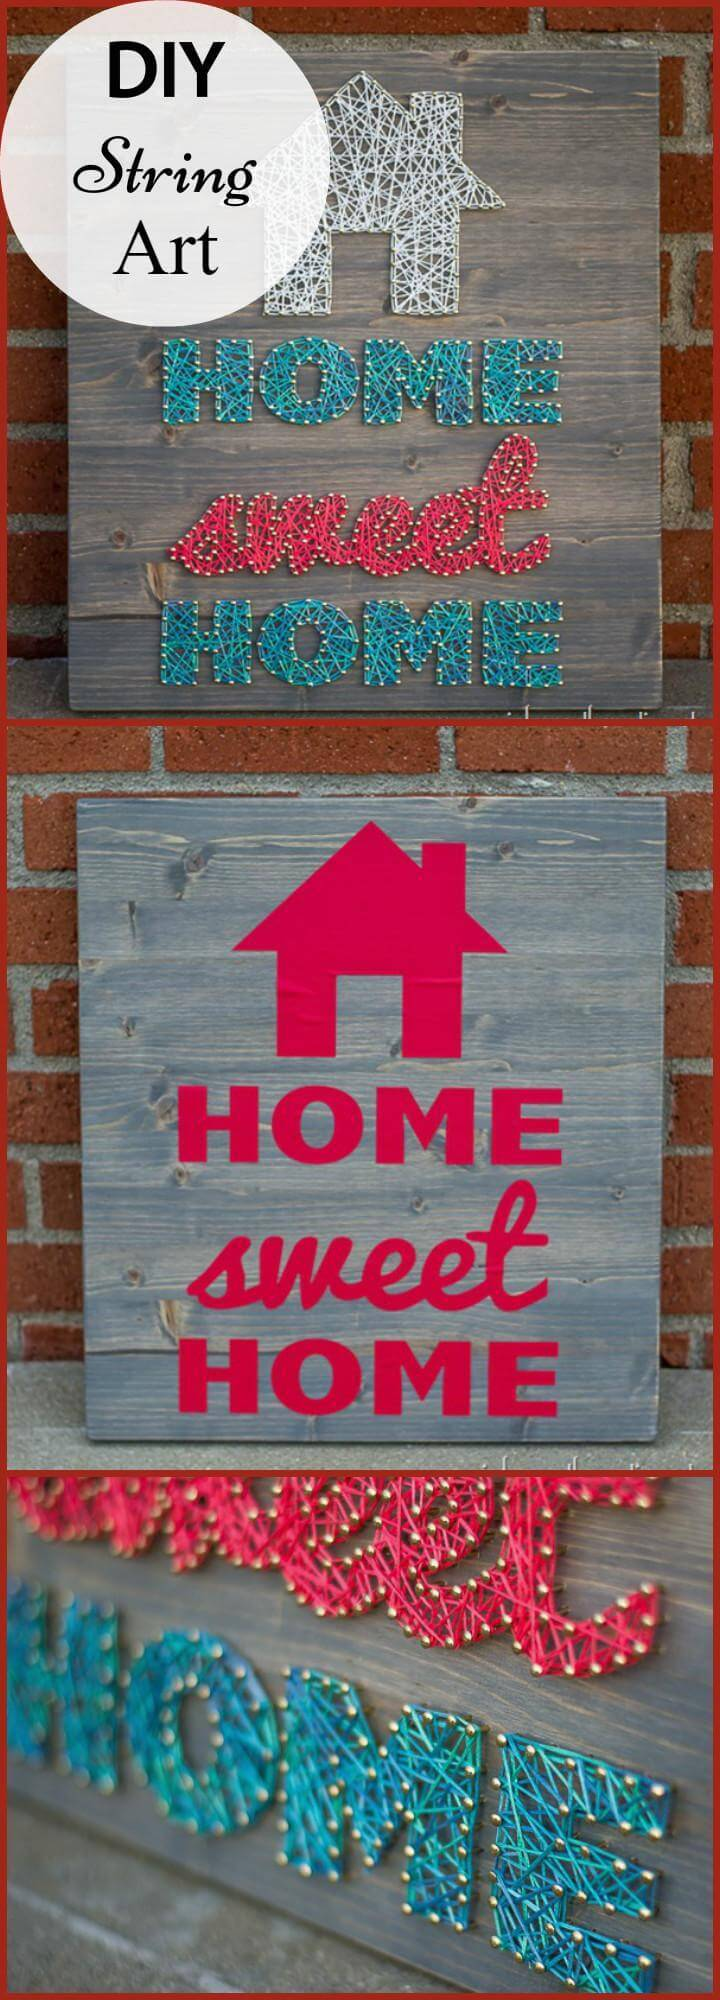 DIY Home Sweet Home String Art